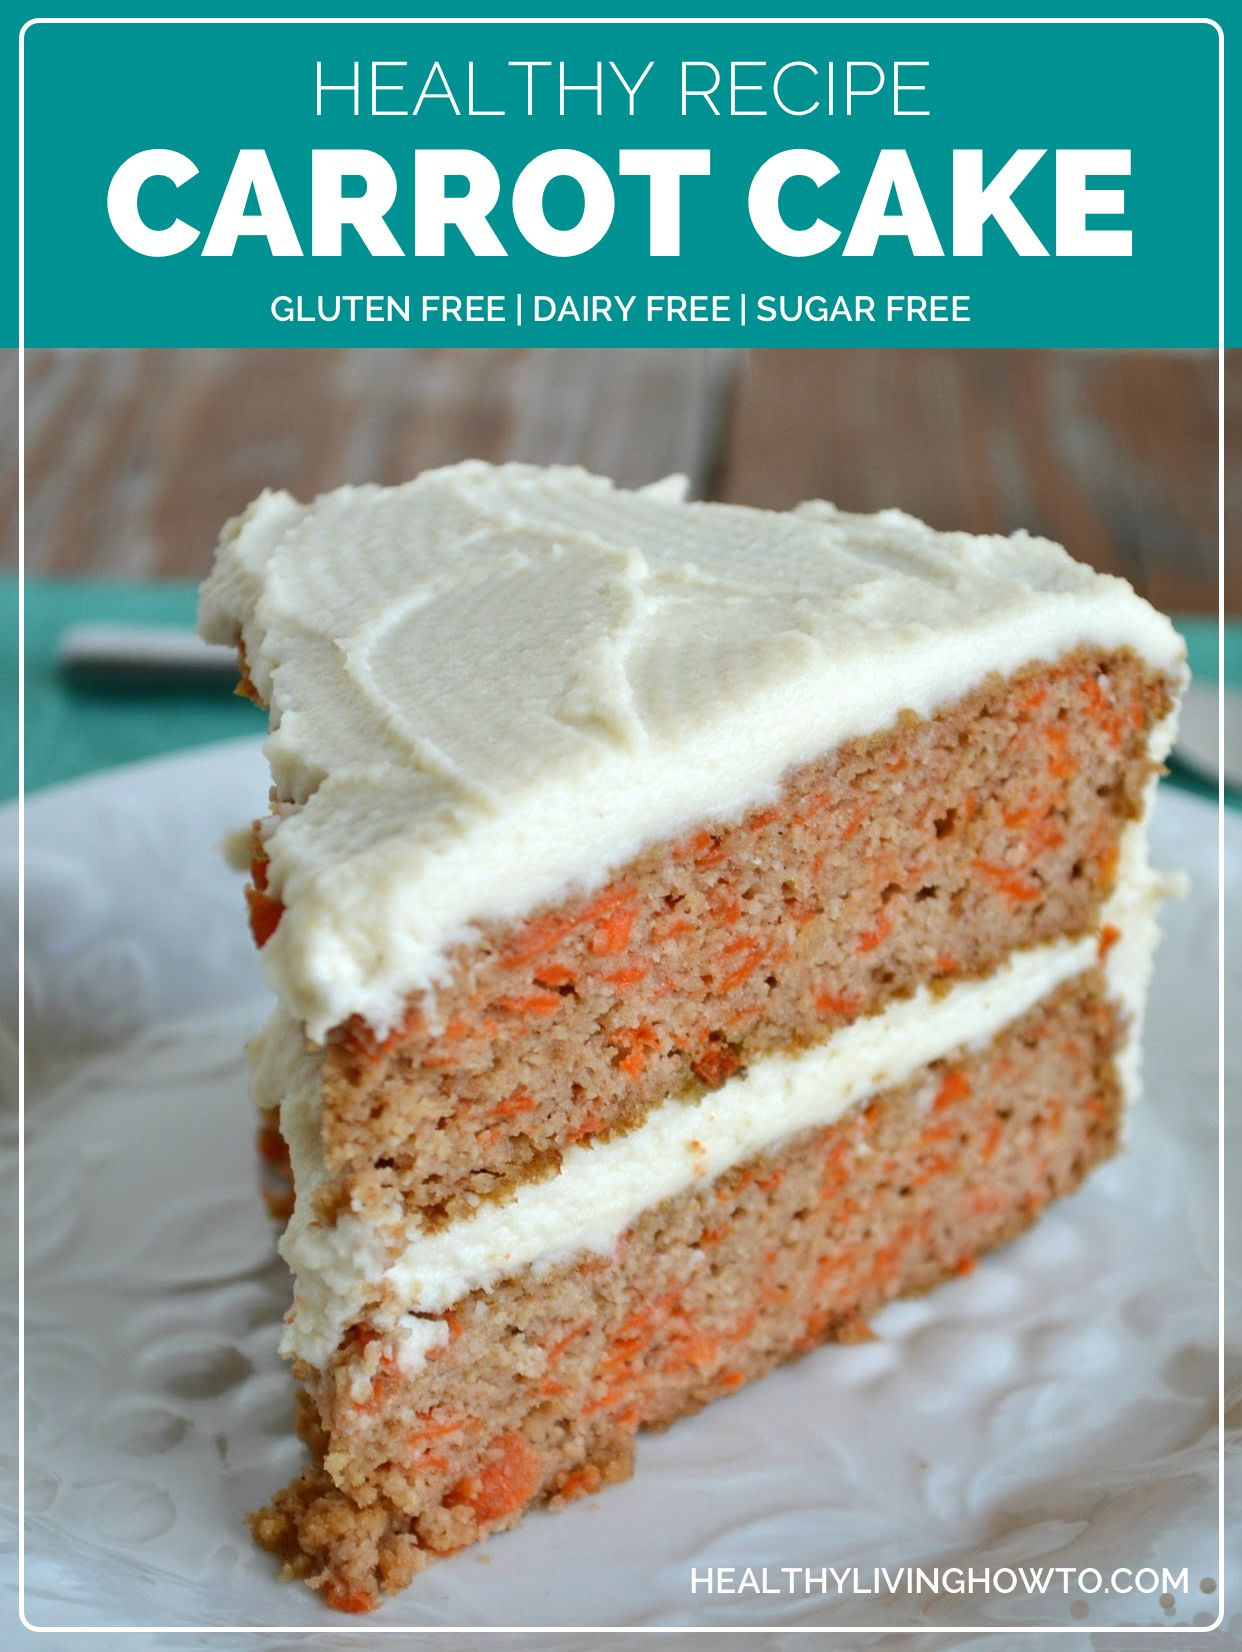 Carrot Cake Healthy  Healthy Carrot Cake